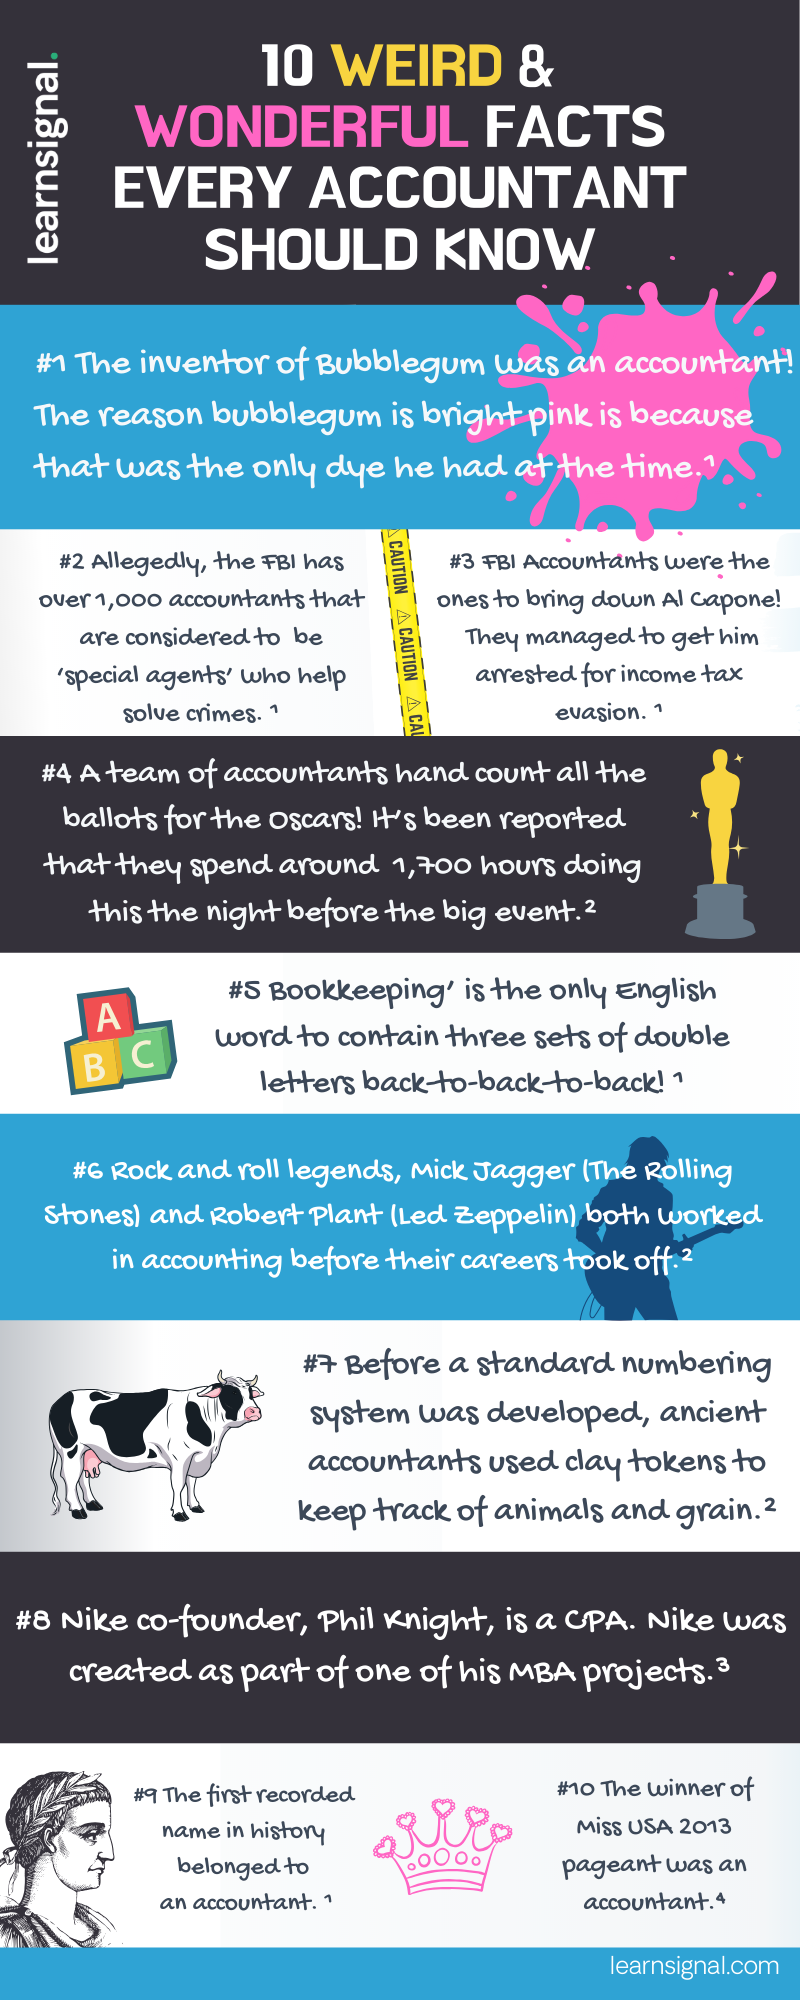 10 Weird & Wonderful Facts Every Accountant Should Know